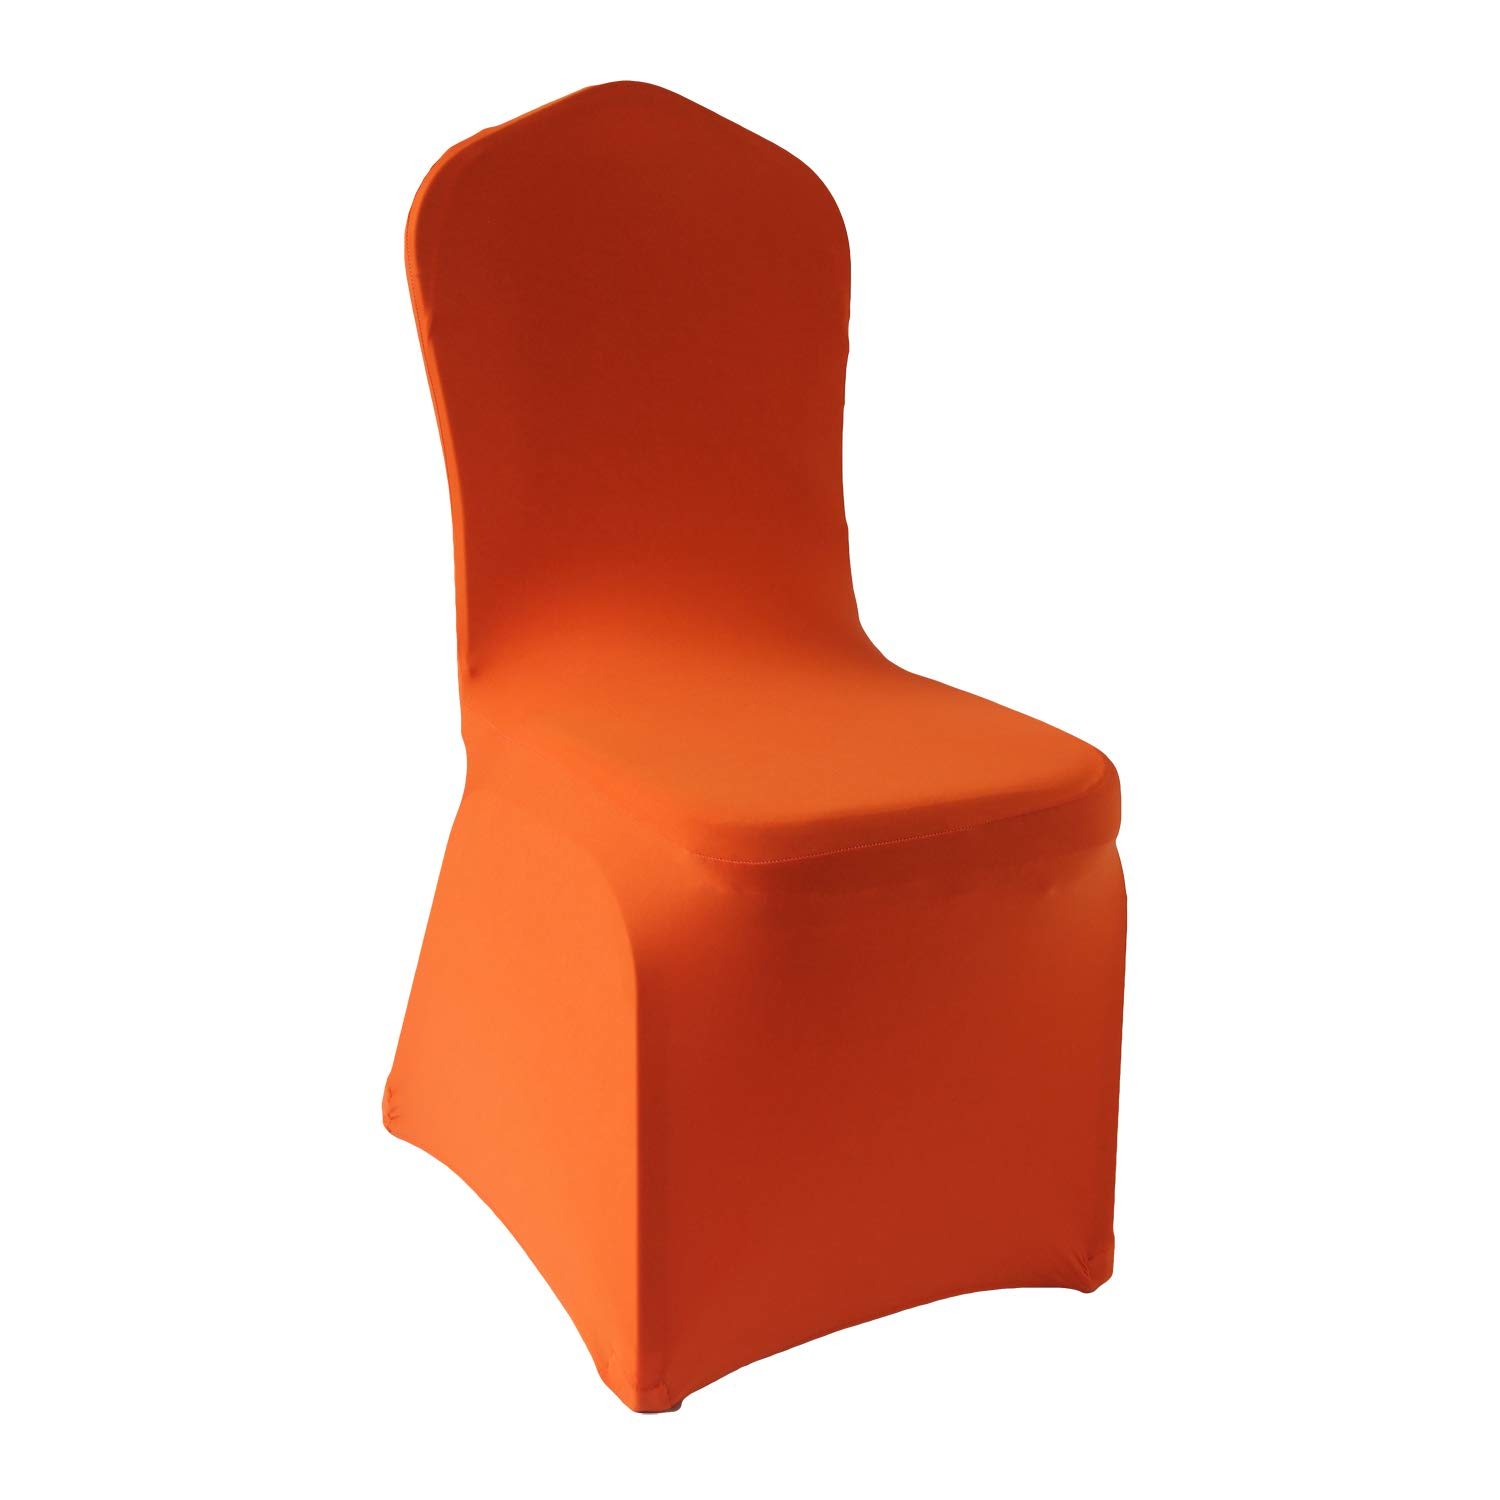 Amazing Orange Stretch Spandex Chair Covers 12 Pcs Wedding Party Dining Scuba Elastic Chair Covers Orange 12 Gmtry Best Dining Table And Chair Ideas Images Gmtryco